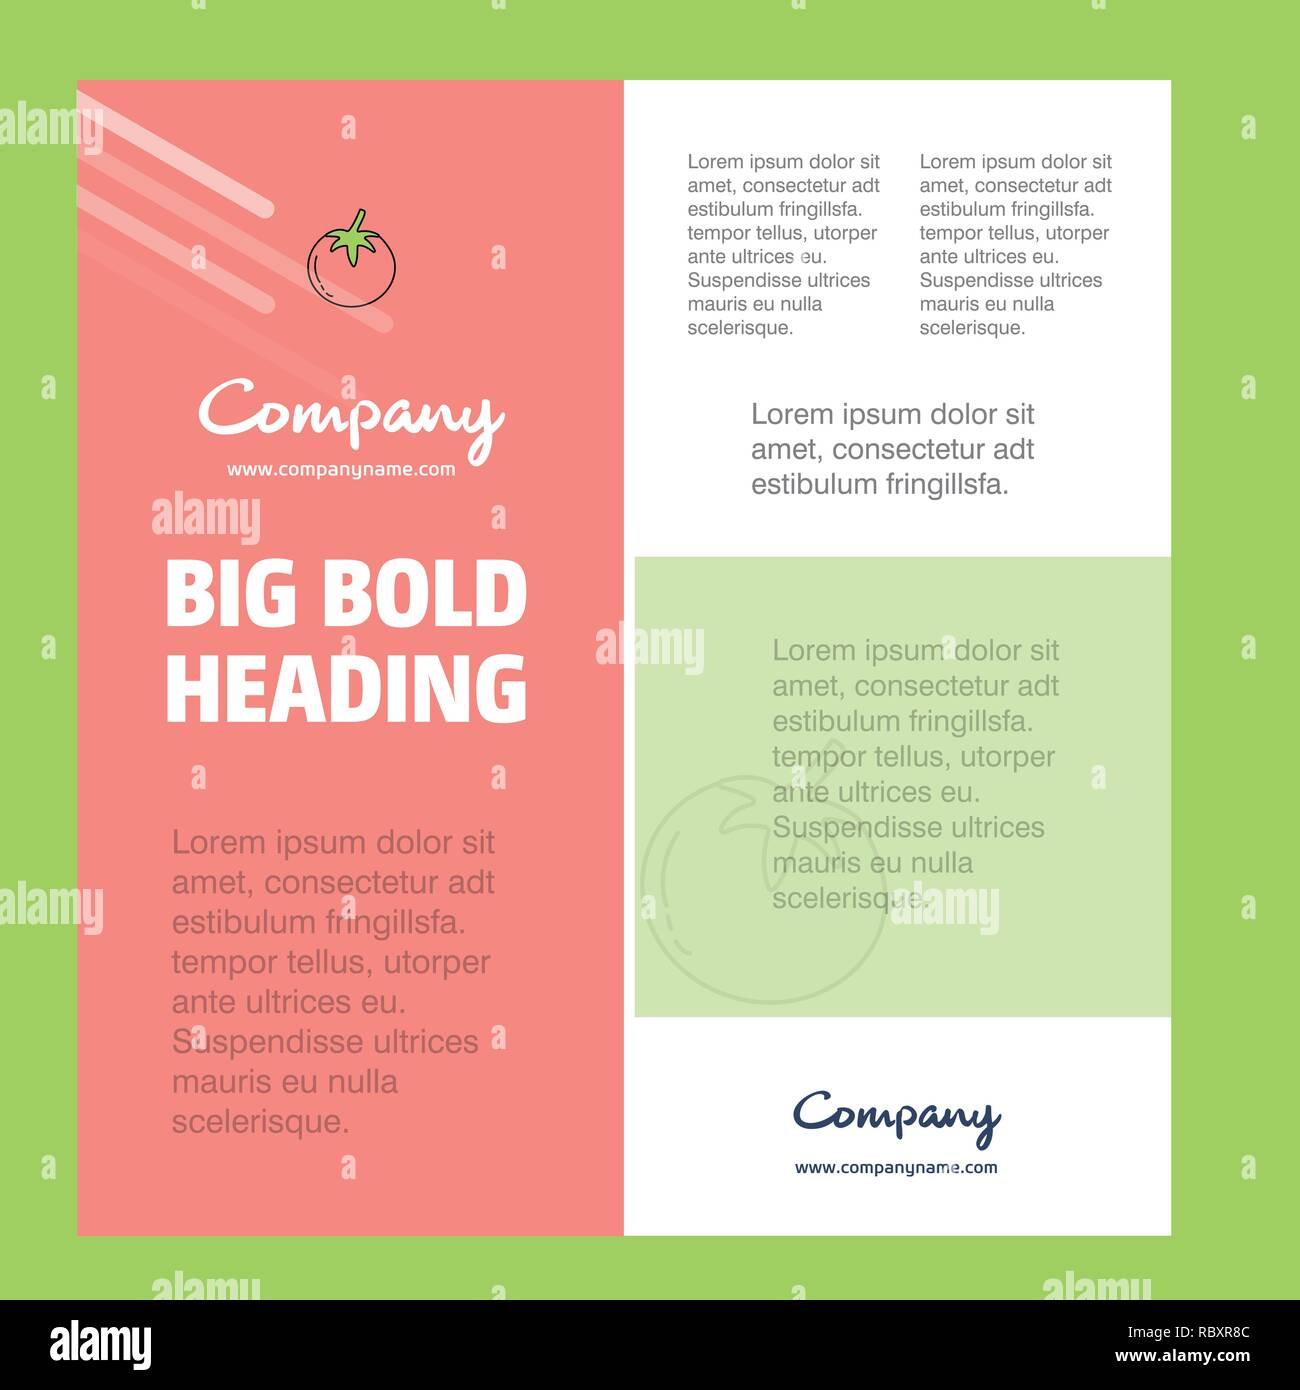 Tomato Business Company Poster Template  with place for text